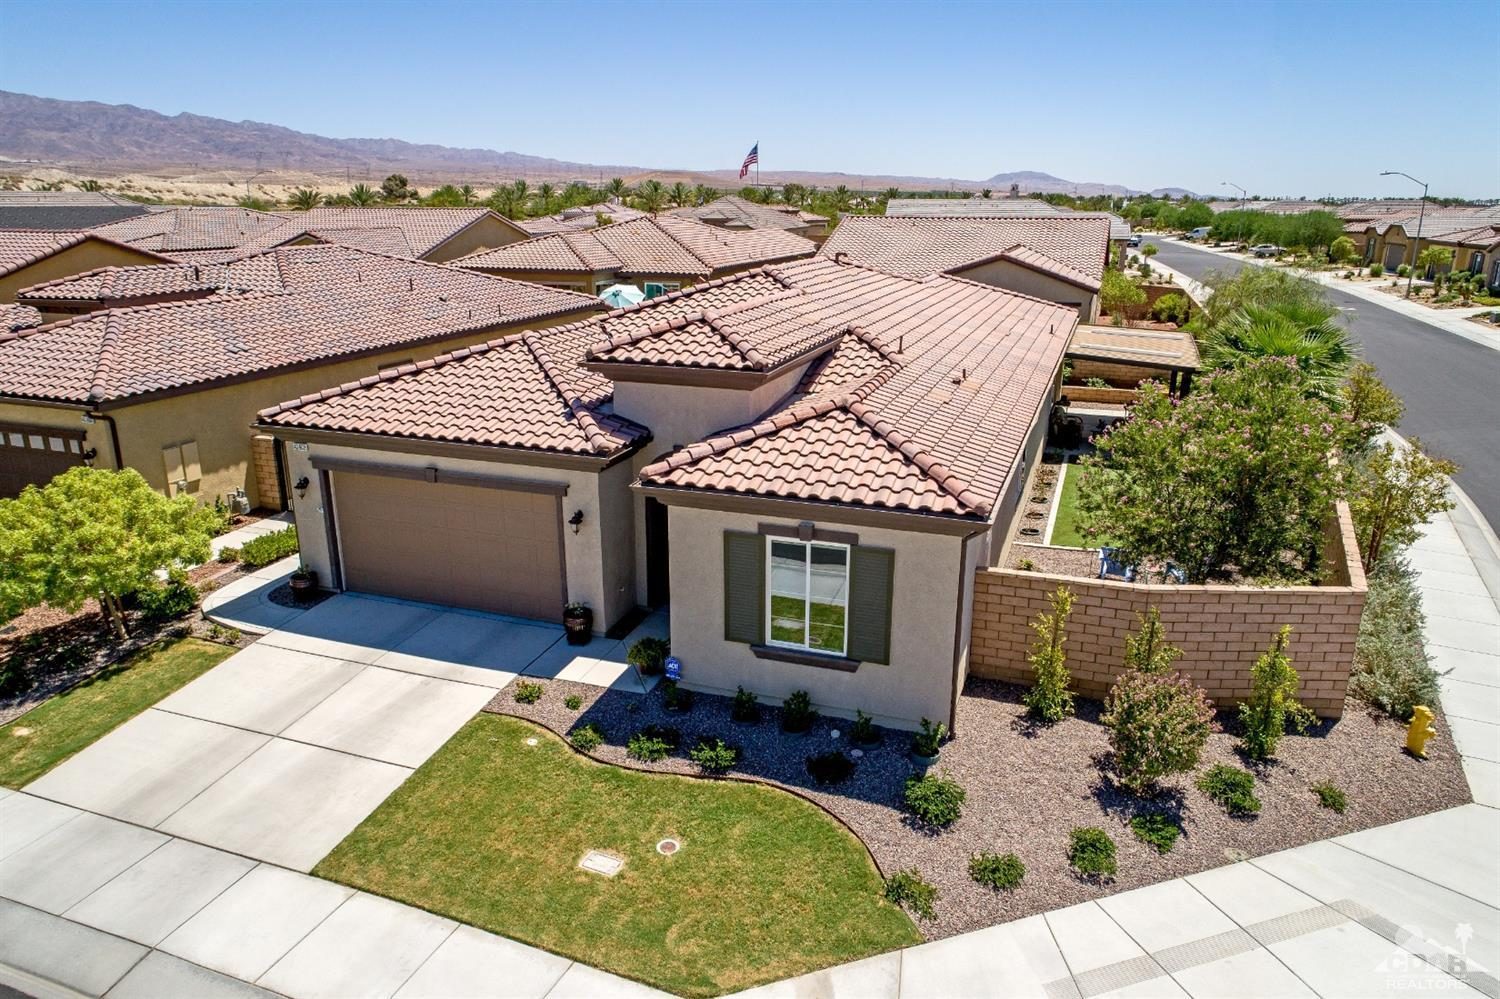 Photo of 42902 Portezza Court, Indio, CA 92203